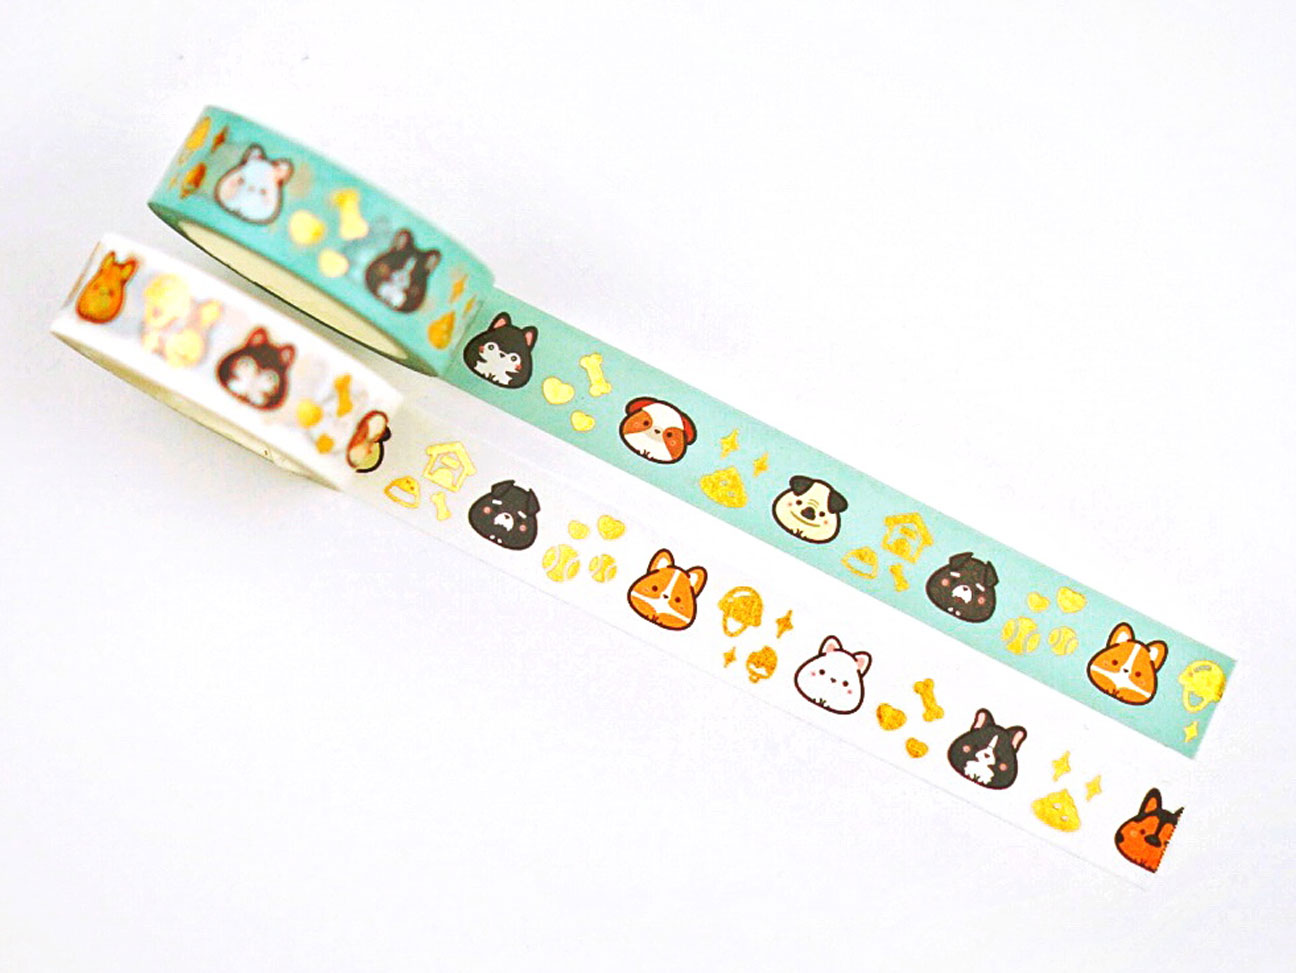 Inugiri Washi Tape - Gold Foiled (January 11 Release)